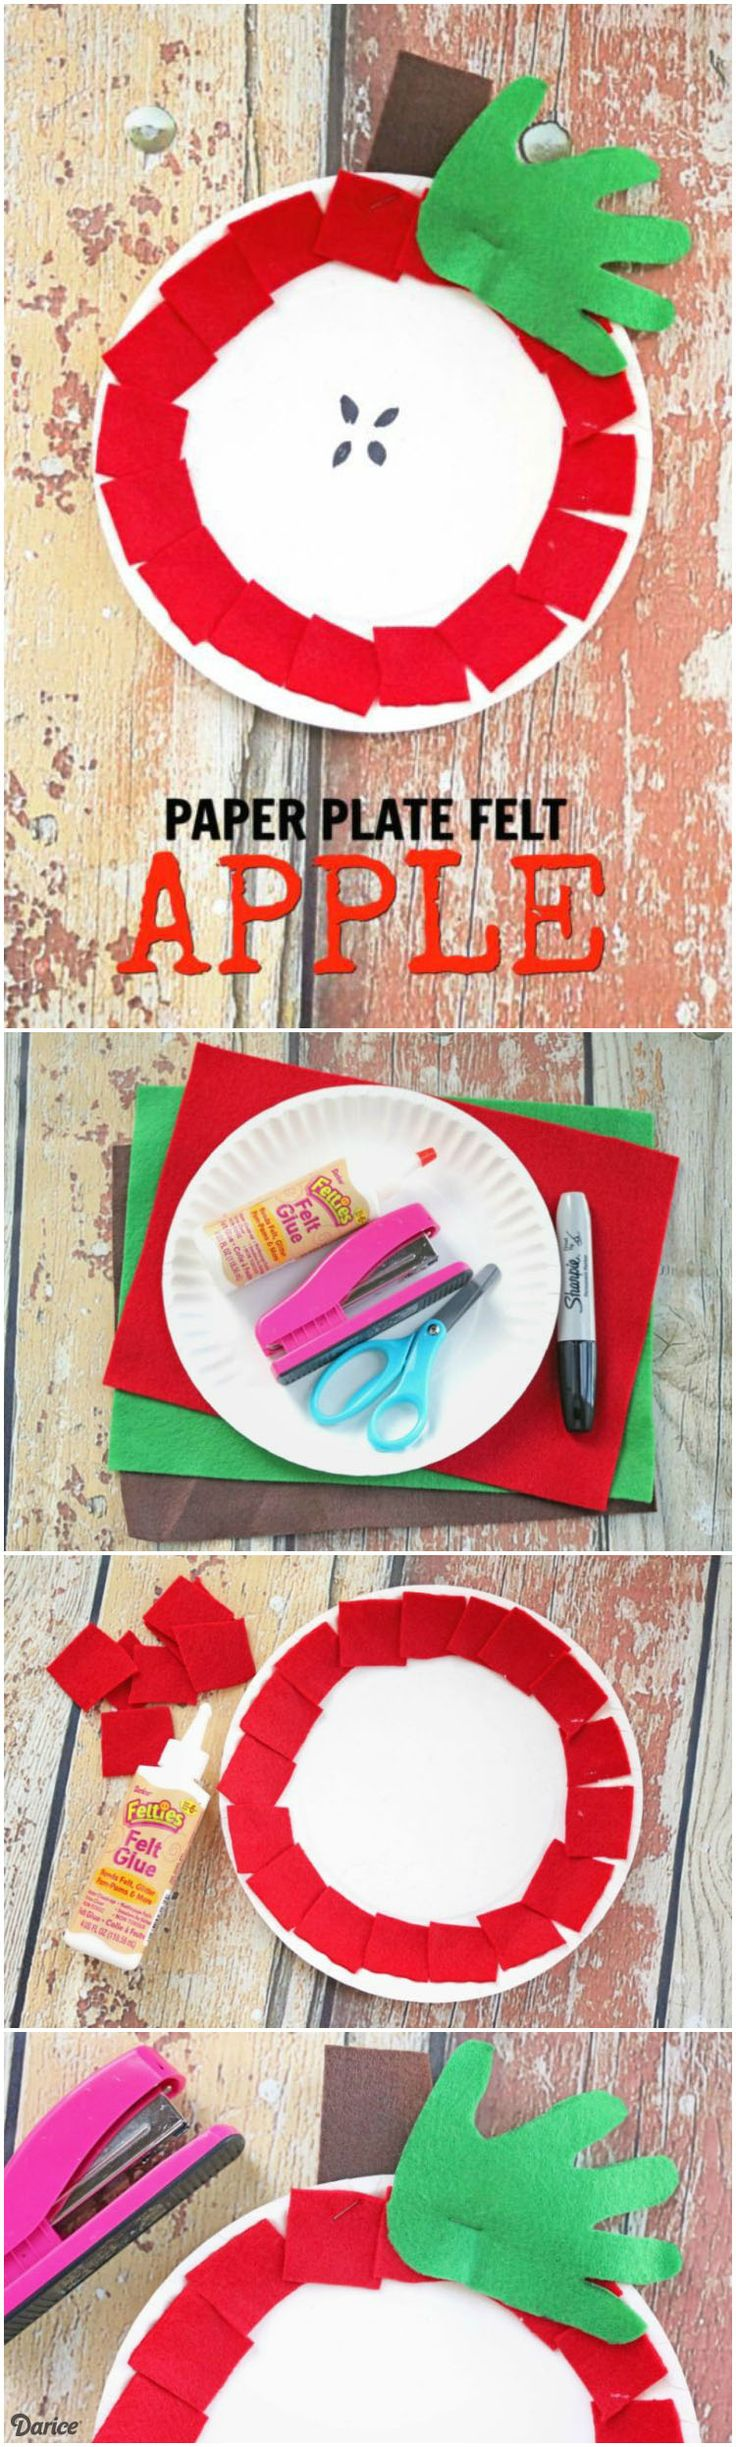 Classroom Craft Ideas ~ Best back to school images on pinterest silhouettes